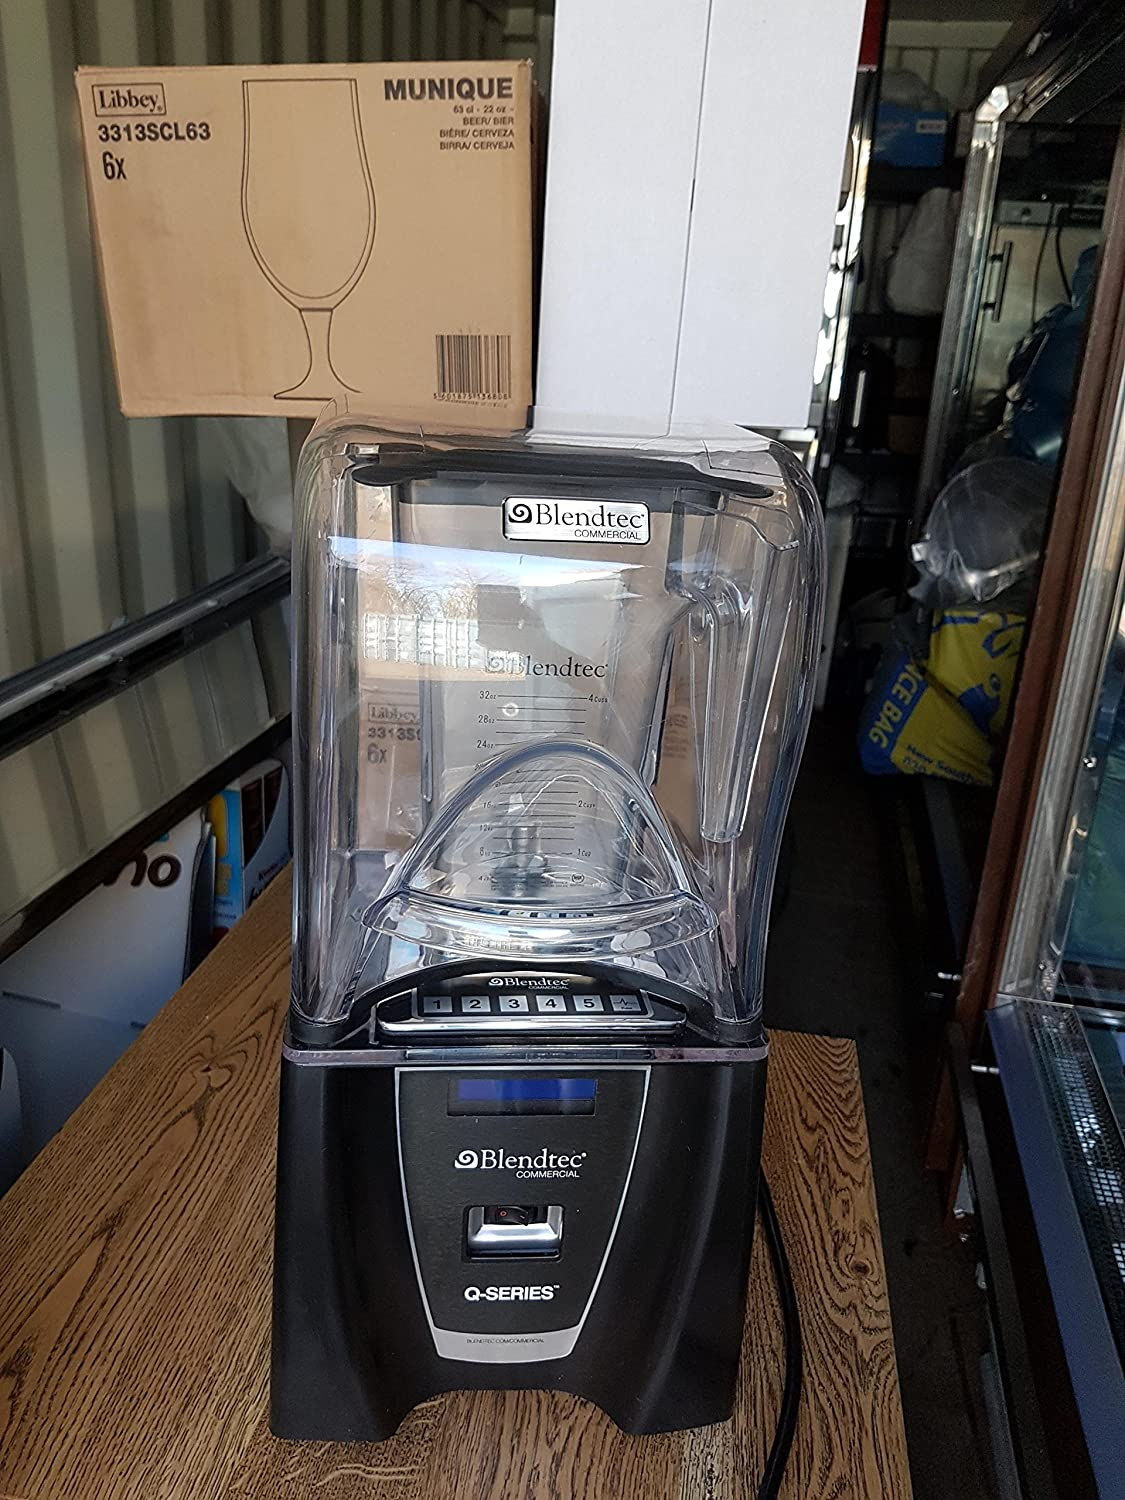 Blendtec Q Series Licuadora Comercial (2 días used): Amazon.es ...